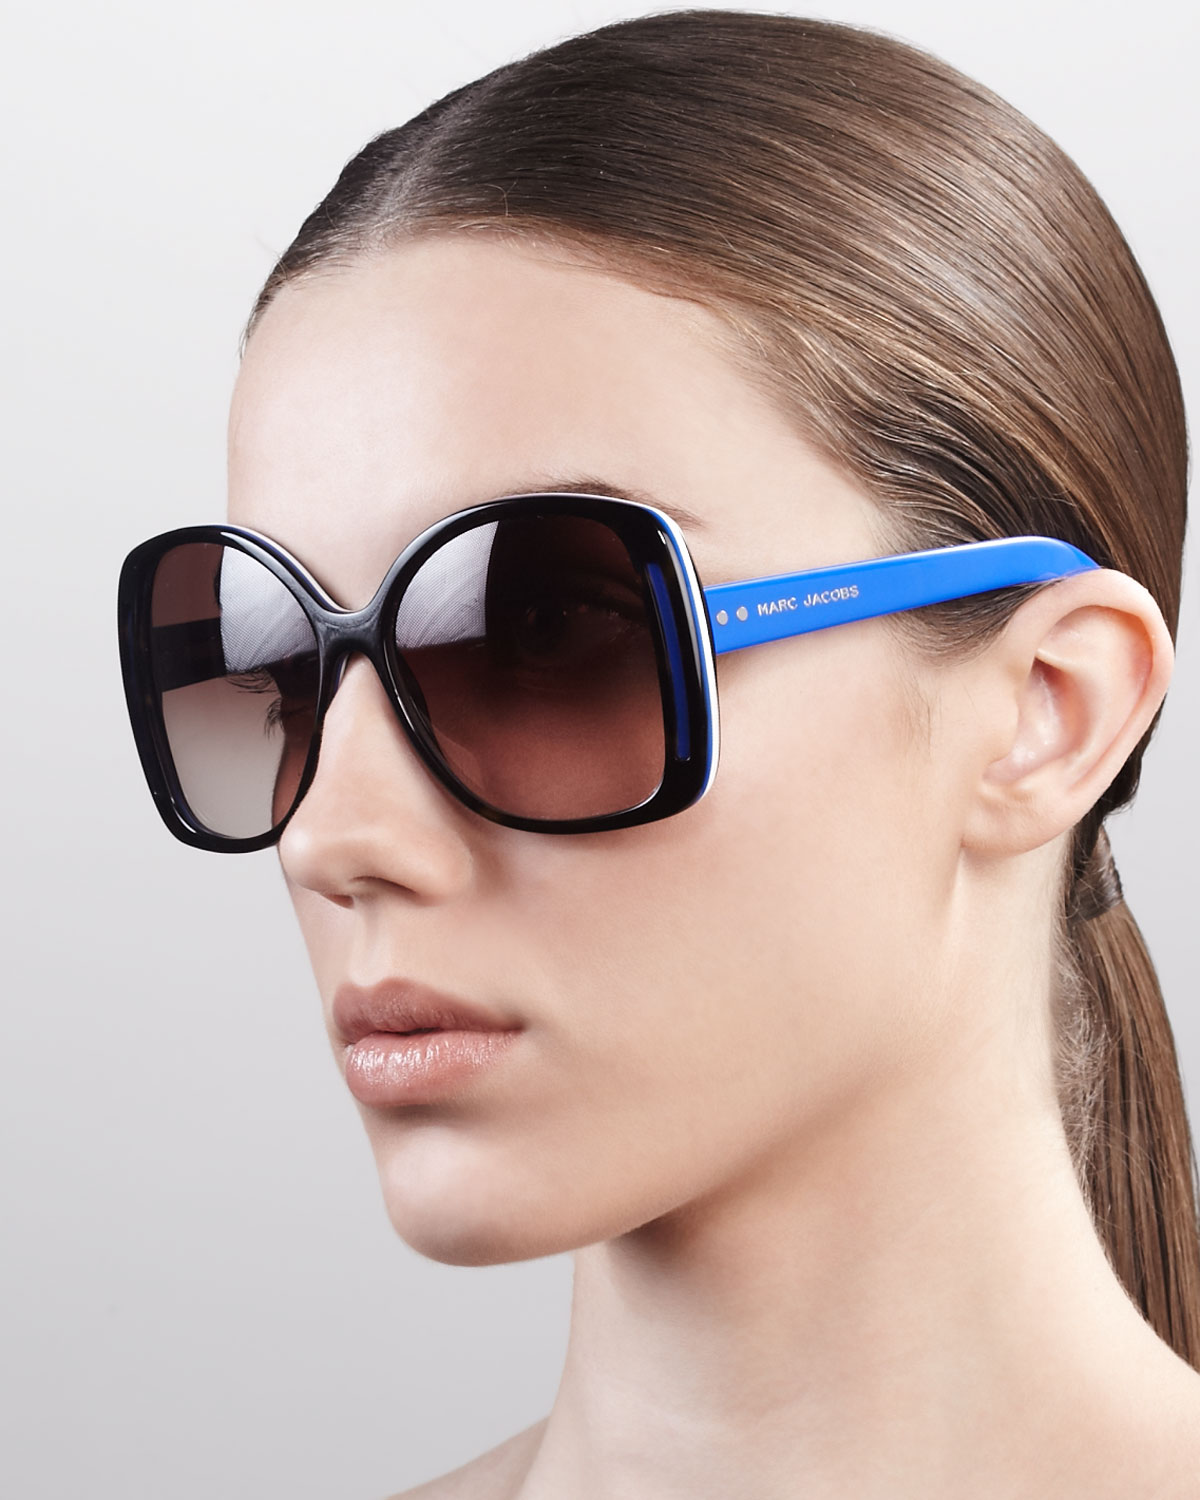 Oversized Oval Sunglasses  marc jacobs oversized oval sunglasses in blue lyst